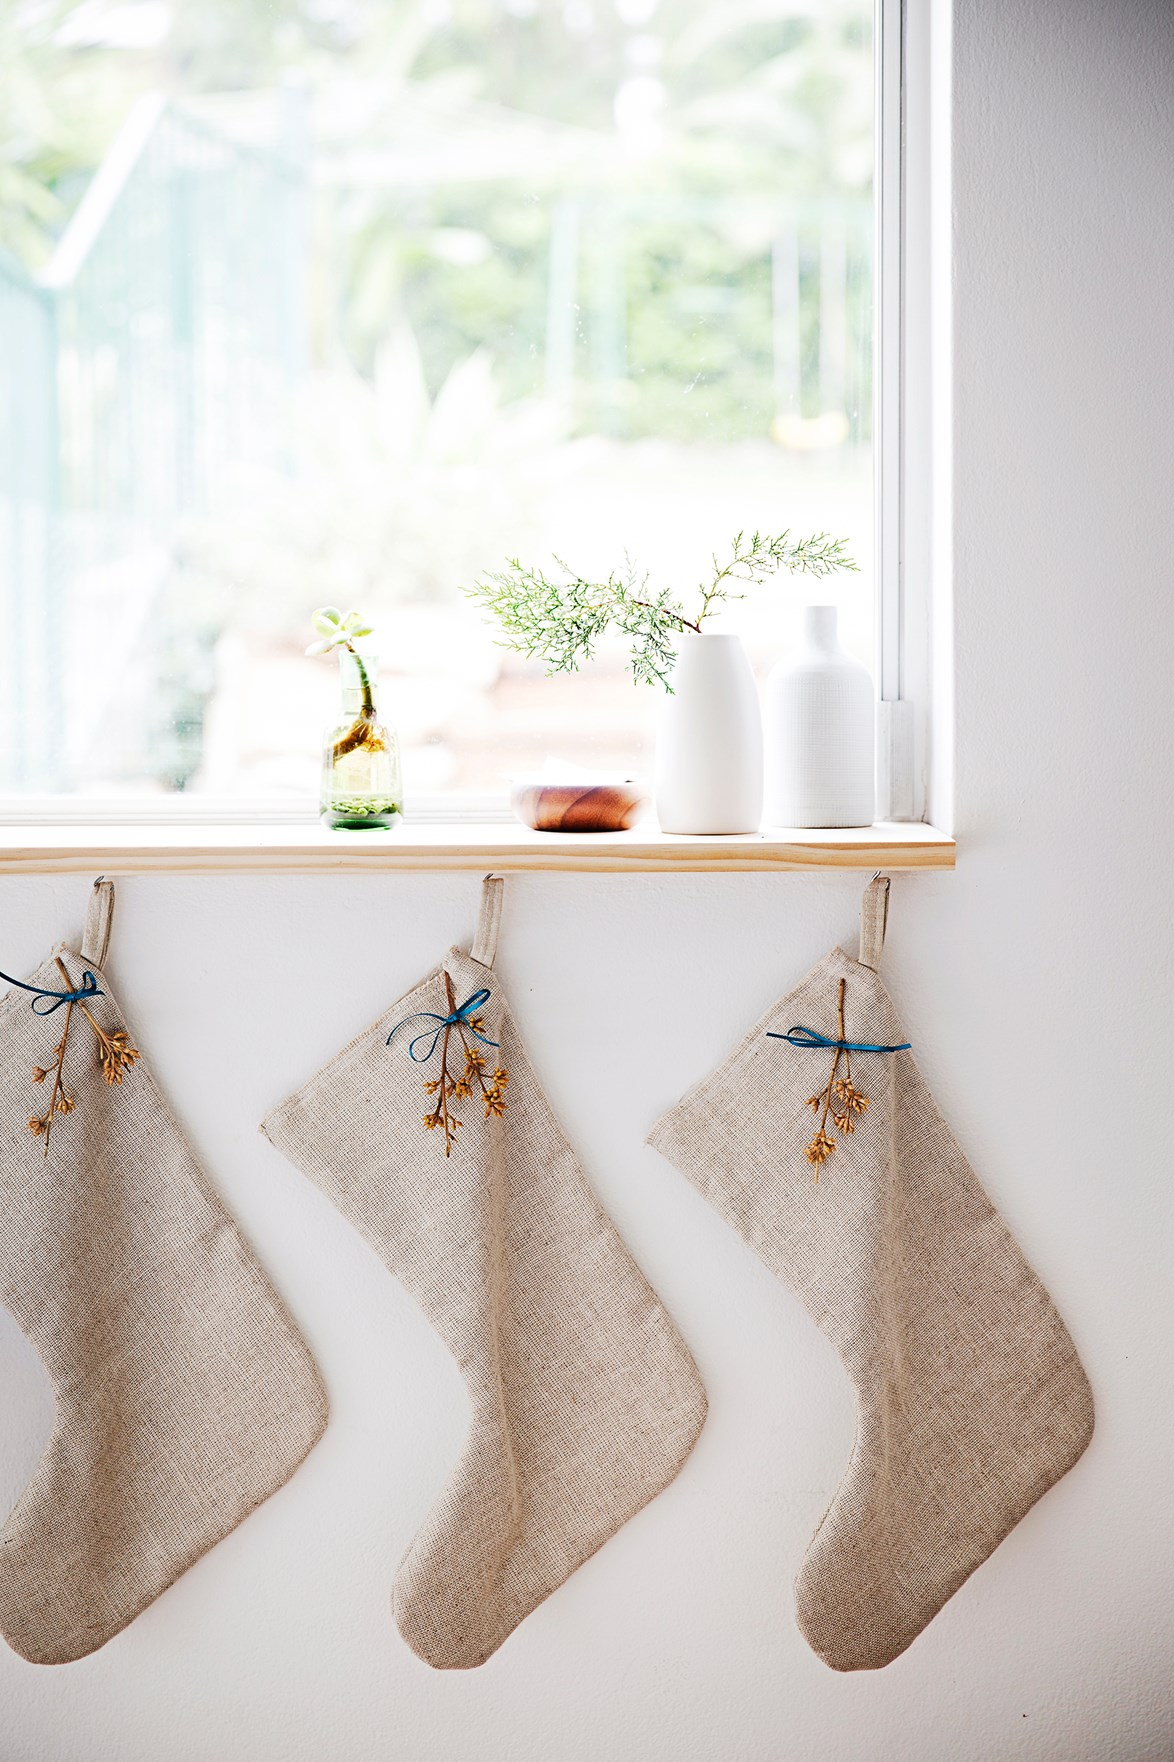 Natural linen stockings and with a eucalyptus sprig from the backyard create an Aussie Christmas feel.